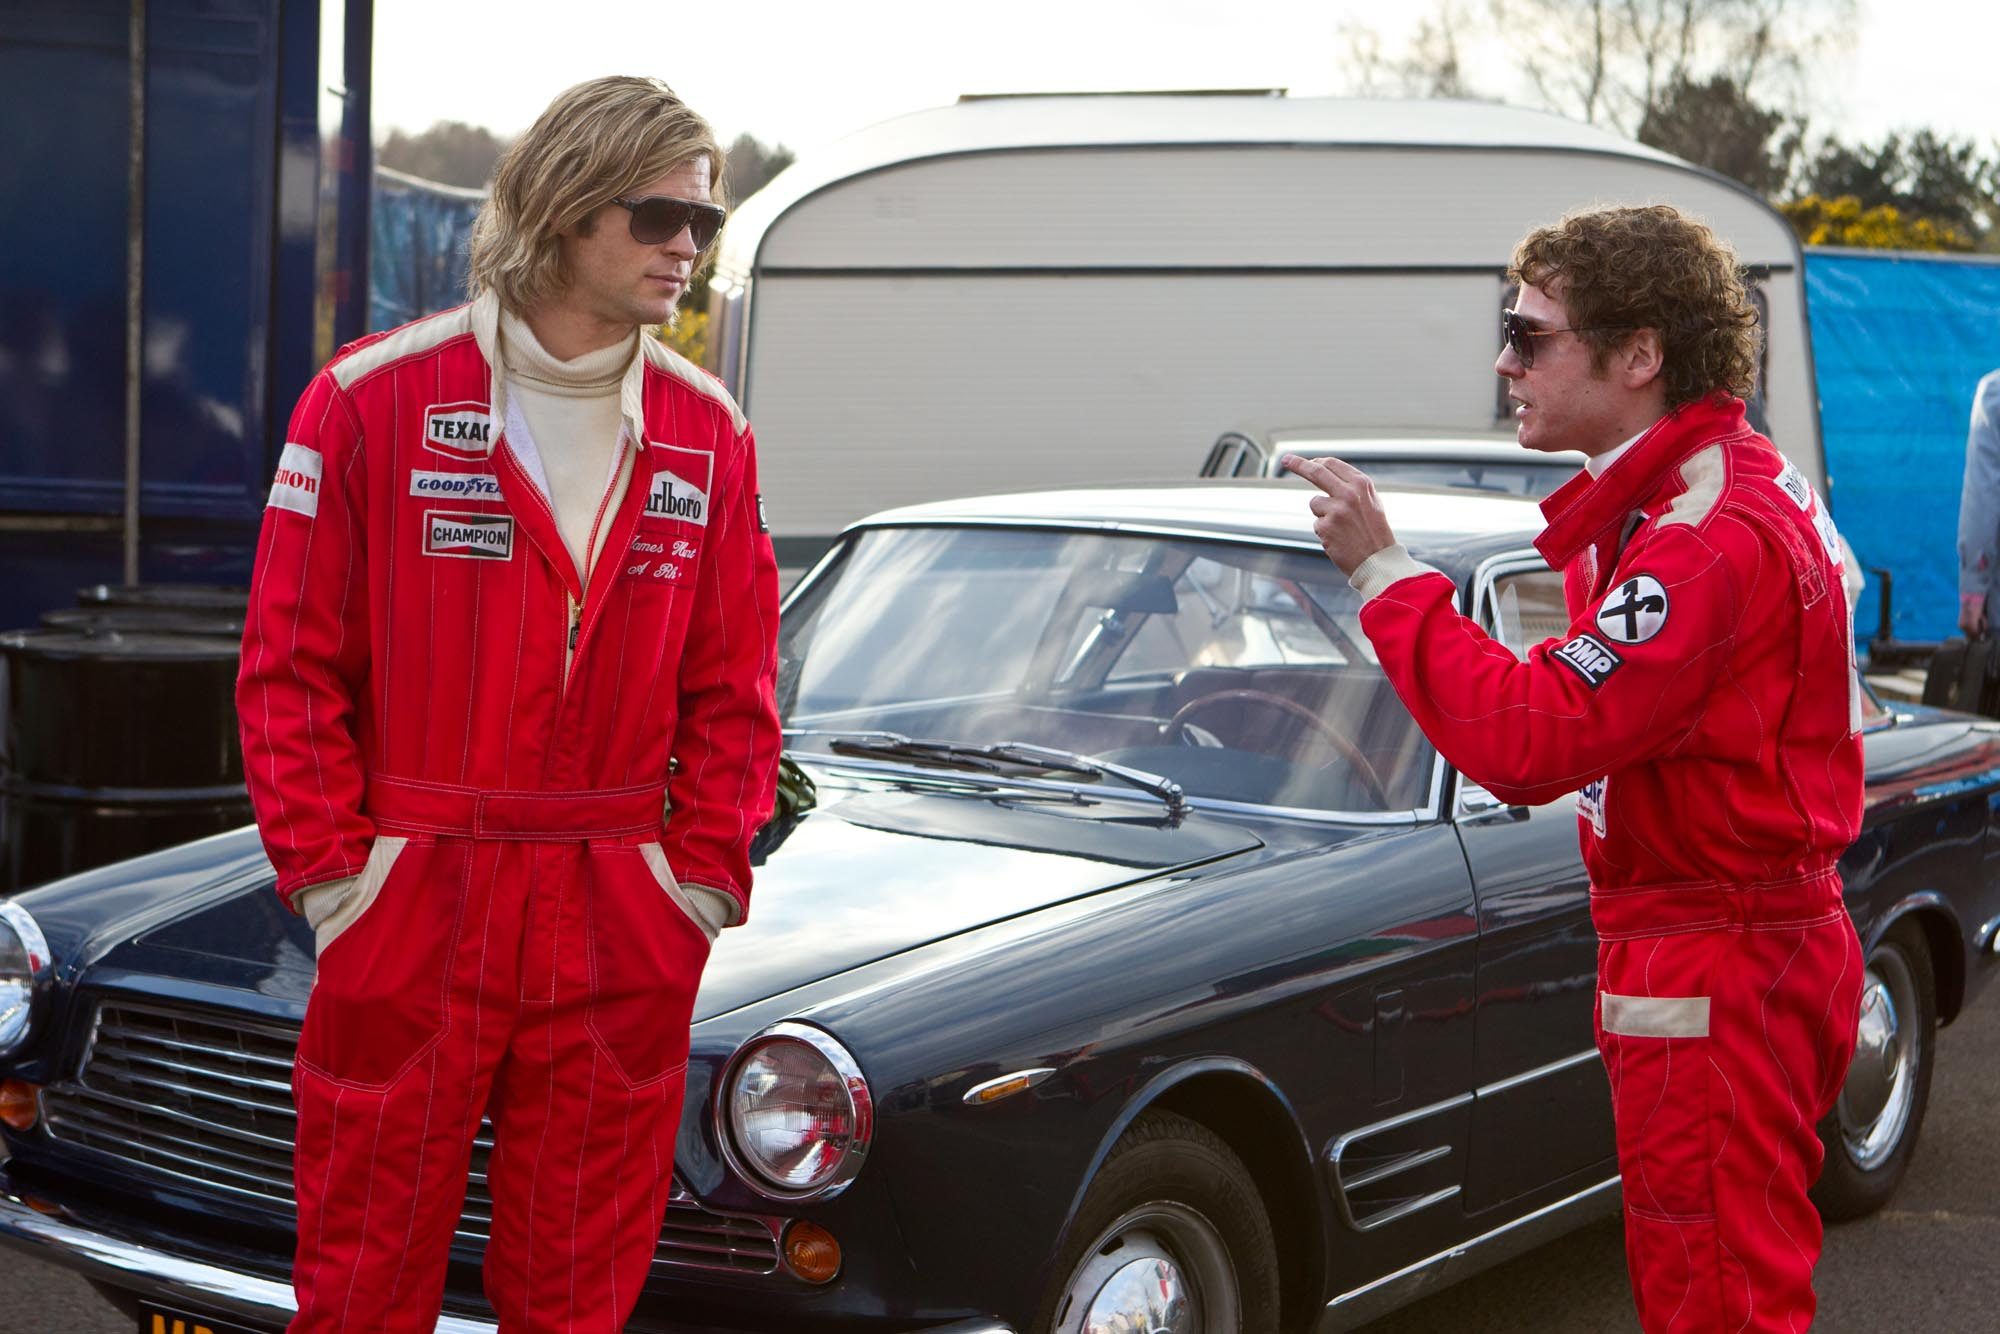 Rush movie new hd wallpapers high definition all hd wallpapers rush 4 voltagebd Image collections